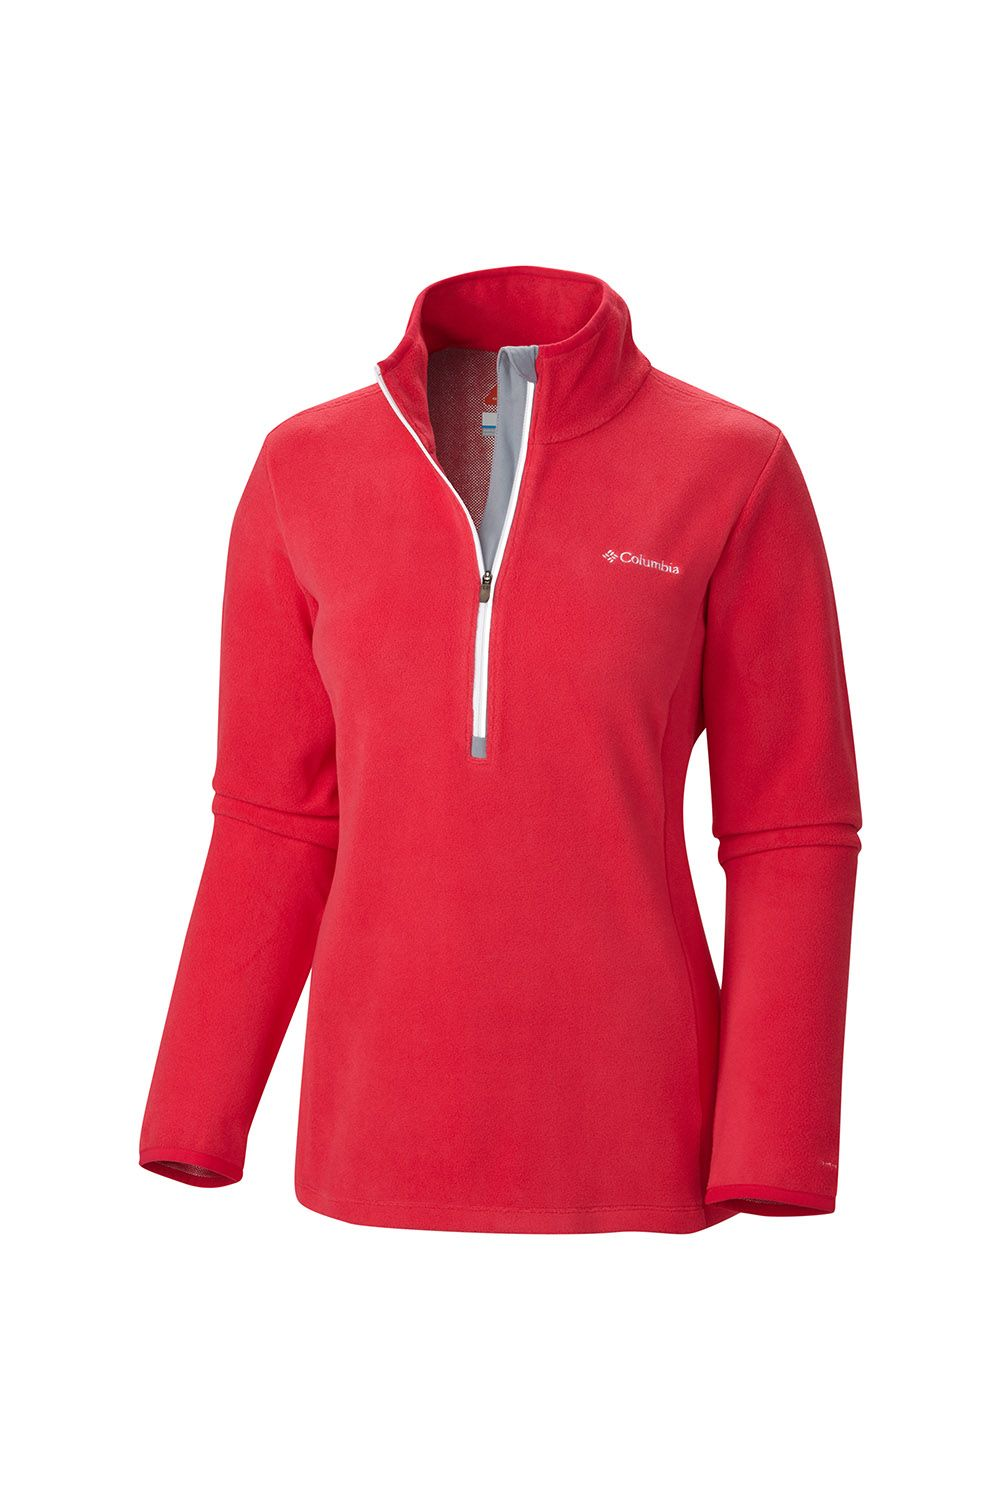 Columbia Women's Blue Basin 1/2 Zip Fleece